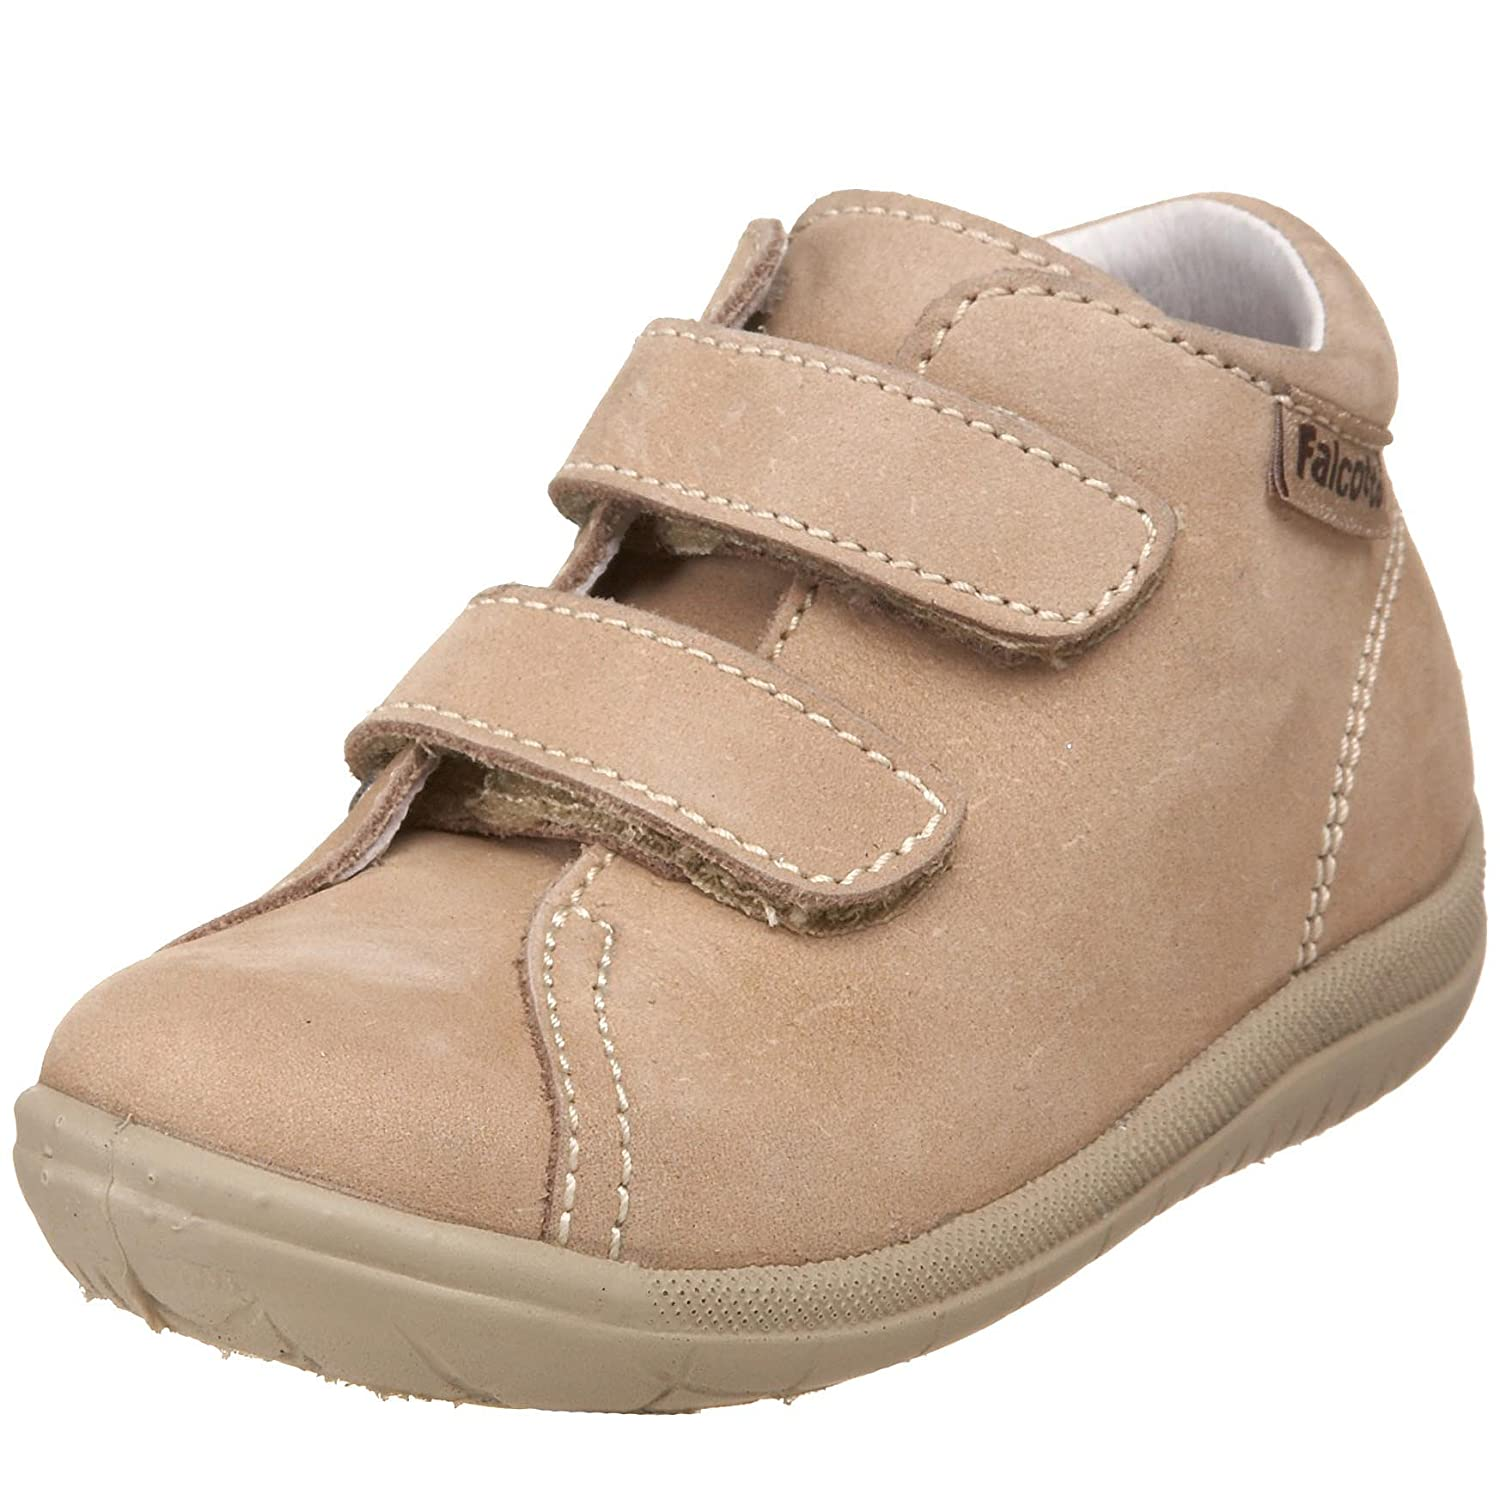 Falcotto 609 chaussures enfant 23 naturino fille gar on baskets tennis montan - Point relais luxembourg ...